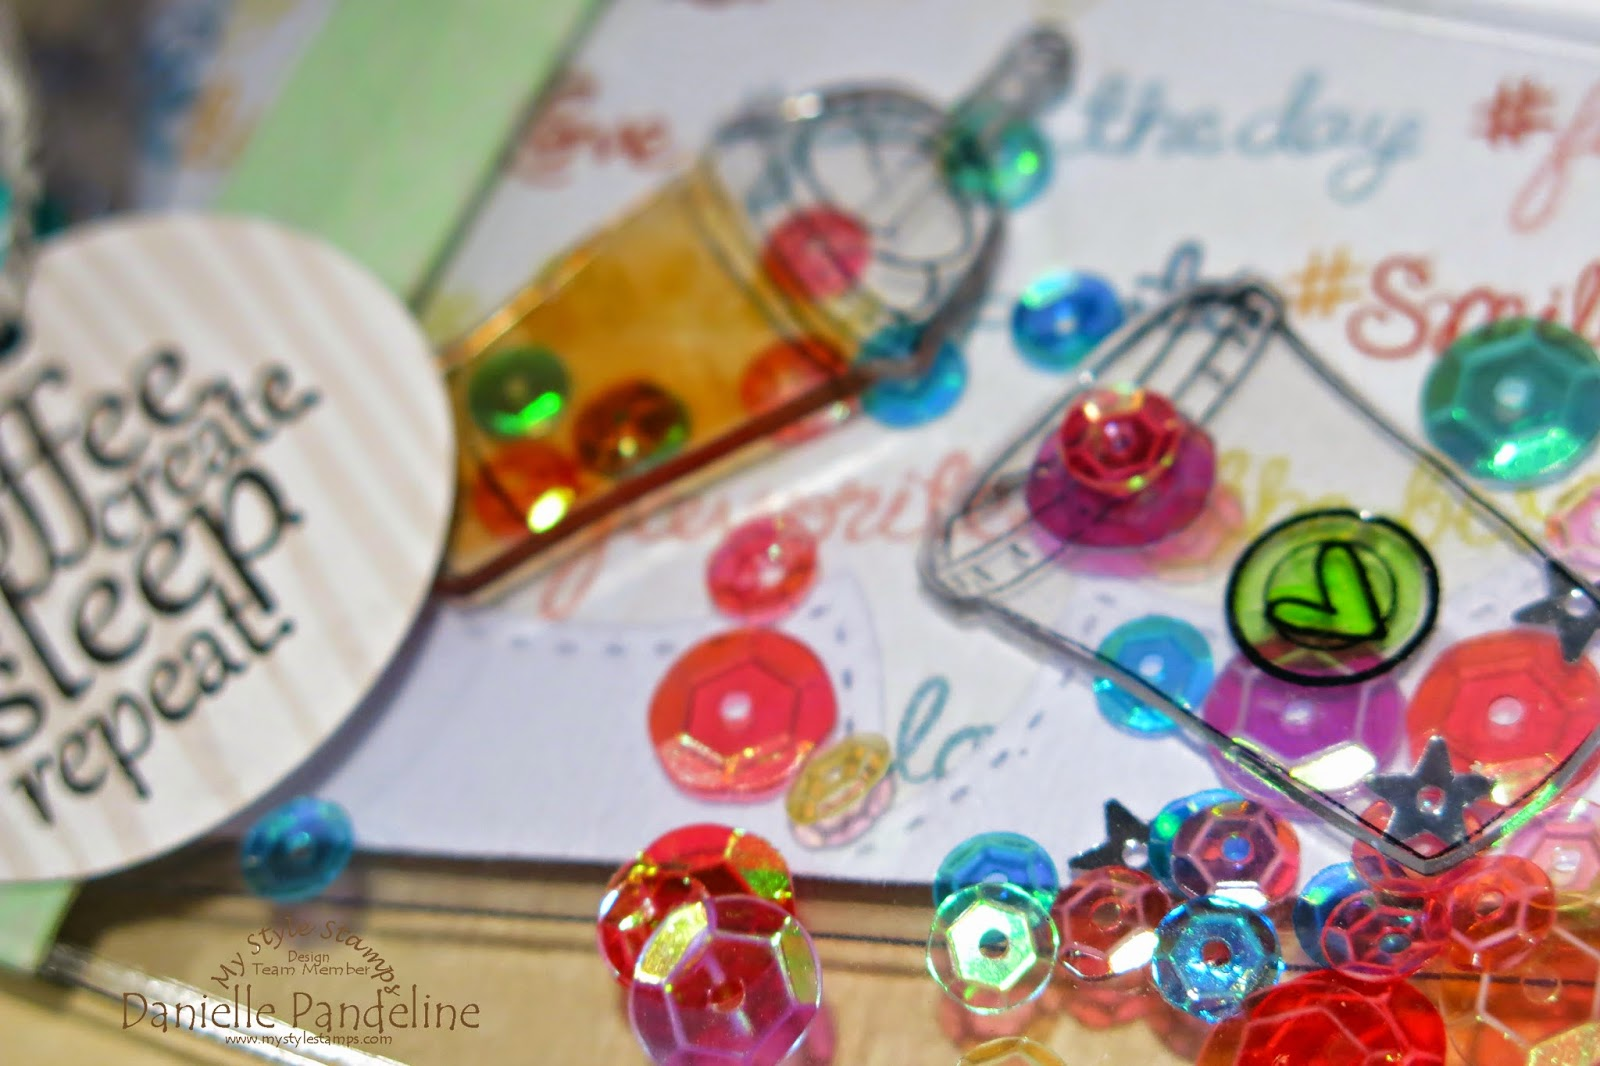 Brag Book | Featuring My Style Stamps Products | Created by Danielle Pandeline